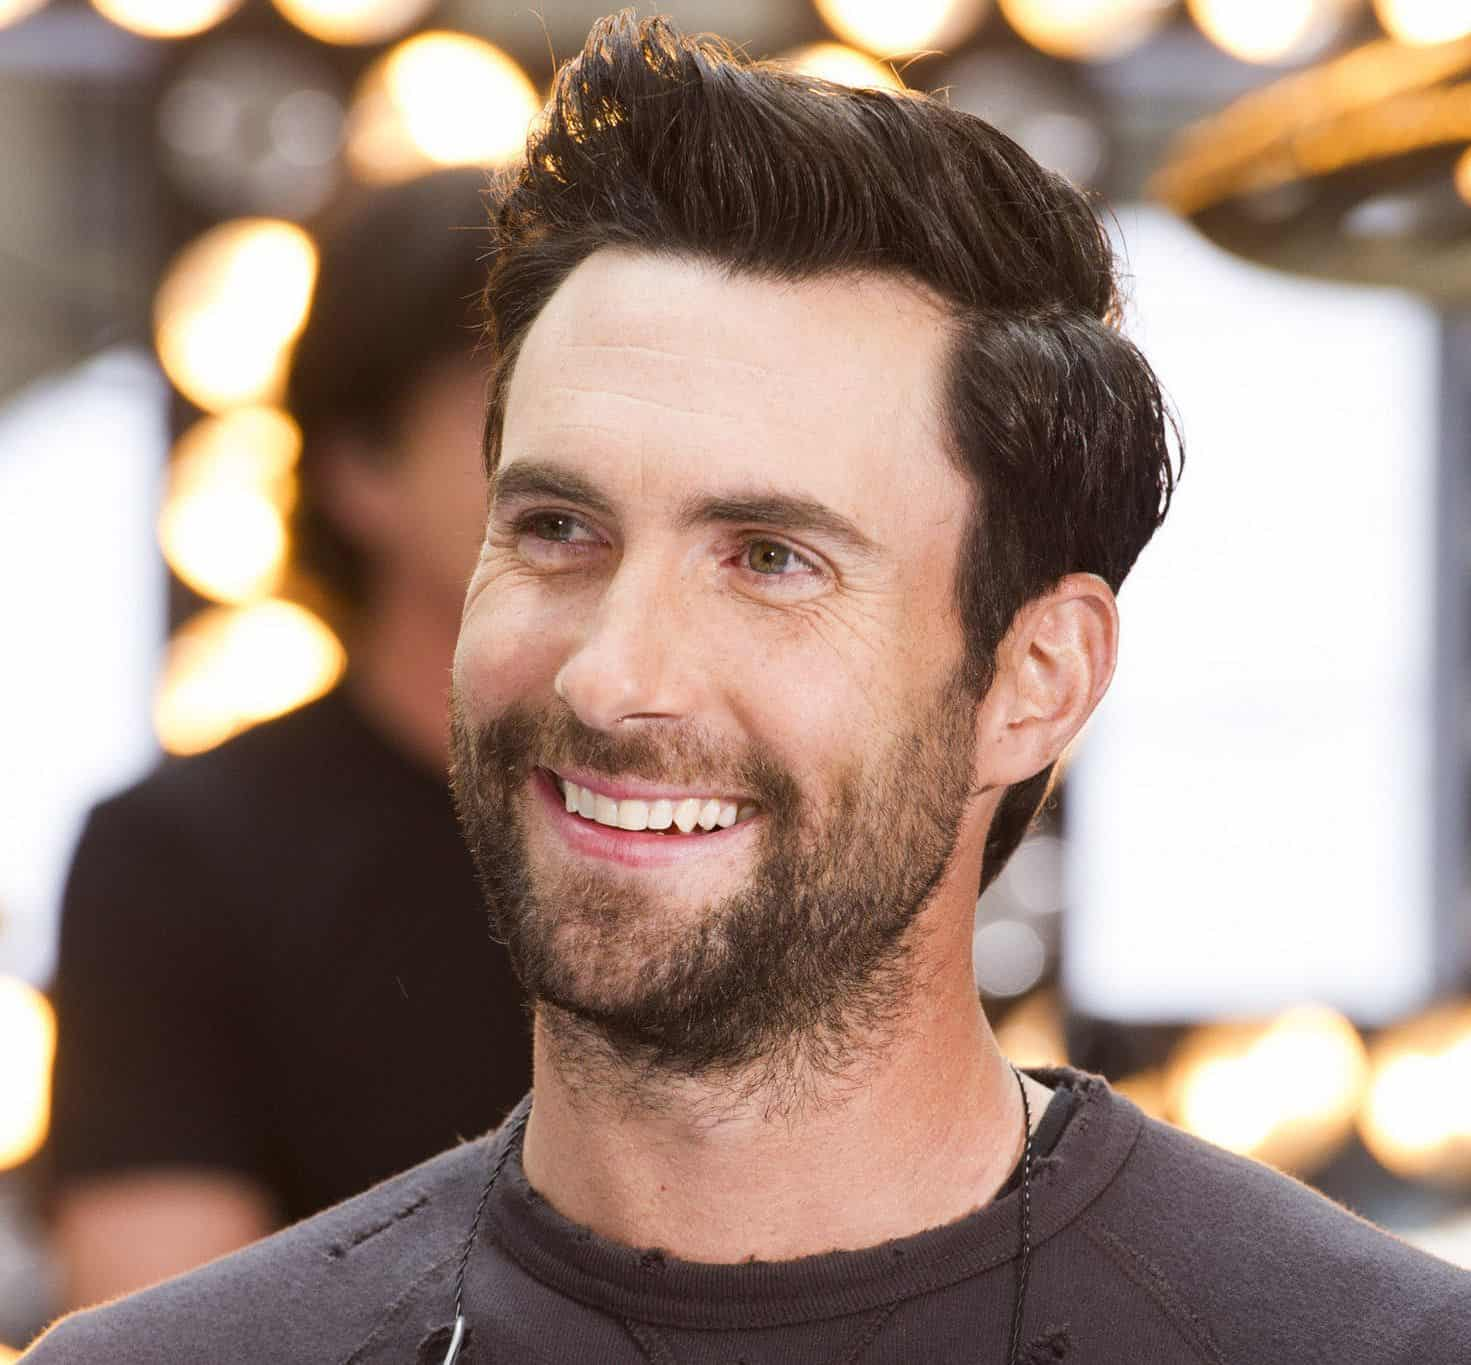 50 Amazing Adam Levine Haircut Ideas - [2018 Styles]